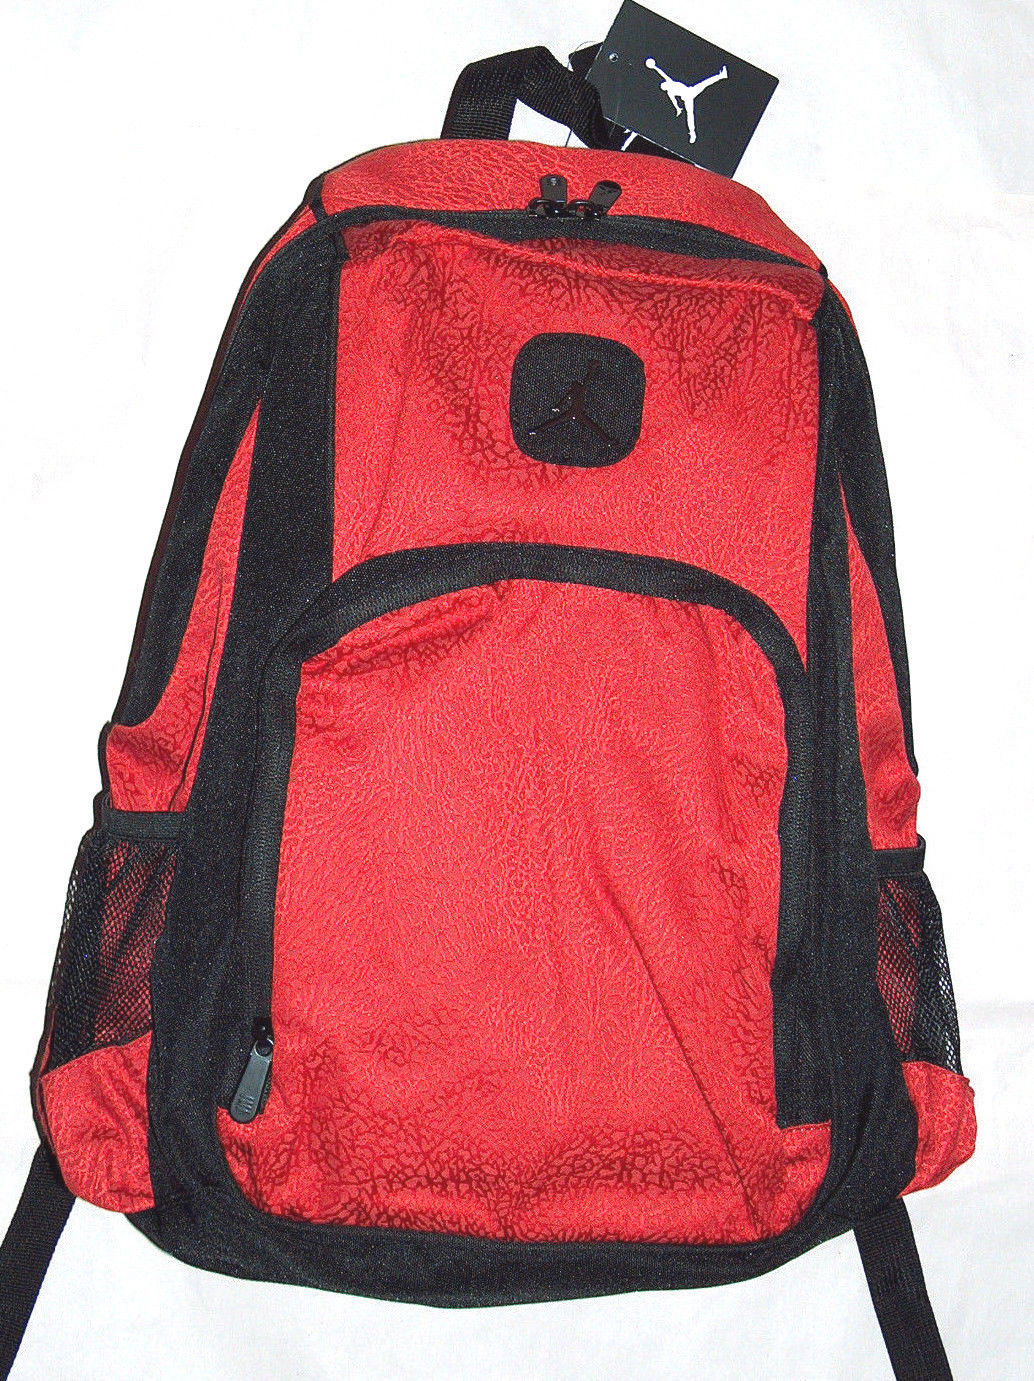 S l1600. S l1600. Nike Air Jordan Jumpman Flight Laptop Bottle Red Leopard  School Backpack Bag 732b552a4e55c